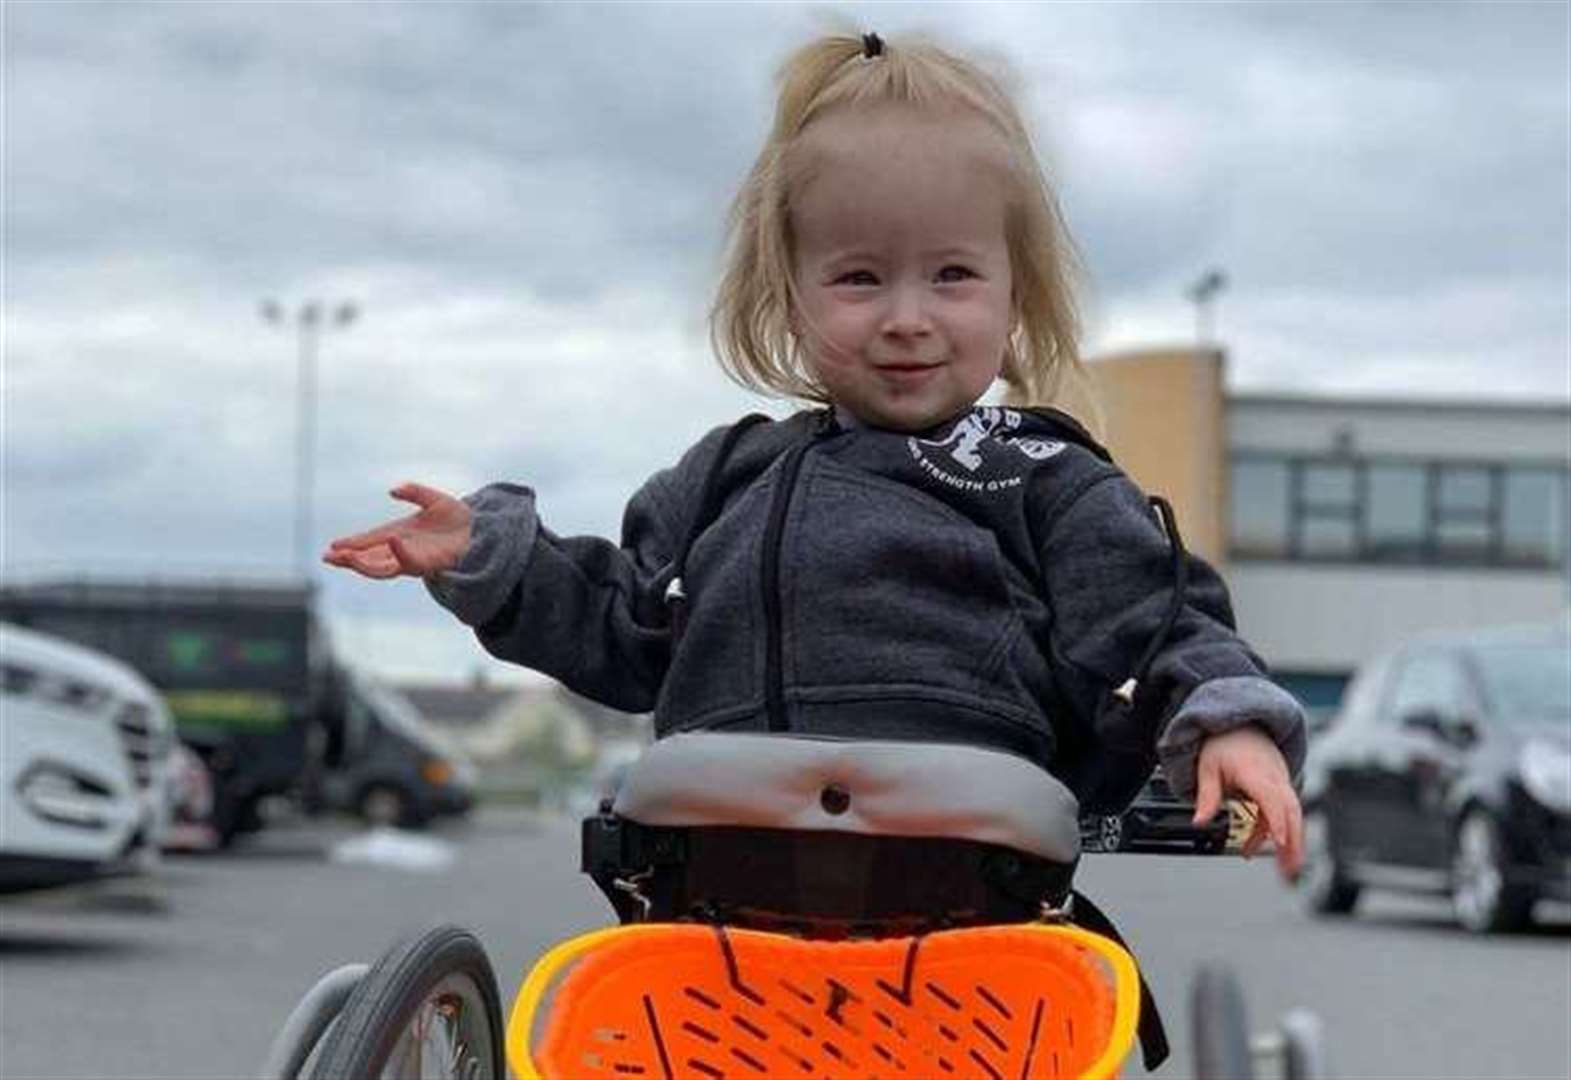 Disabled toddler's mobility vehicle stolen